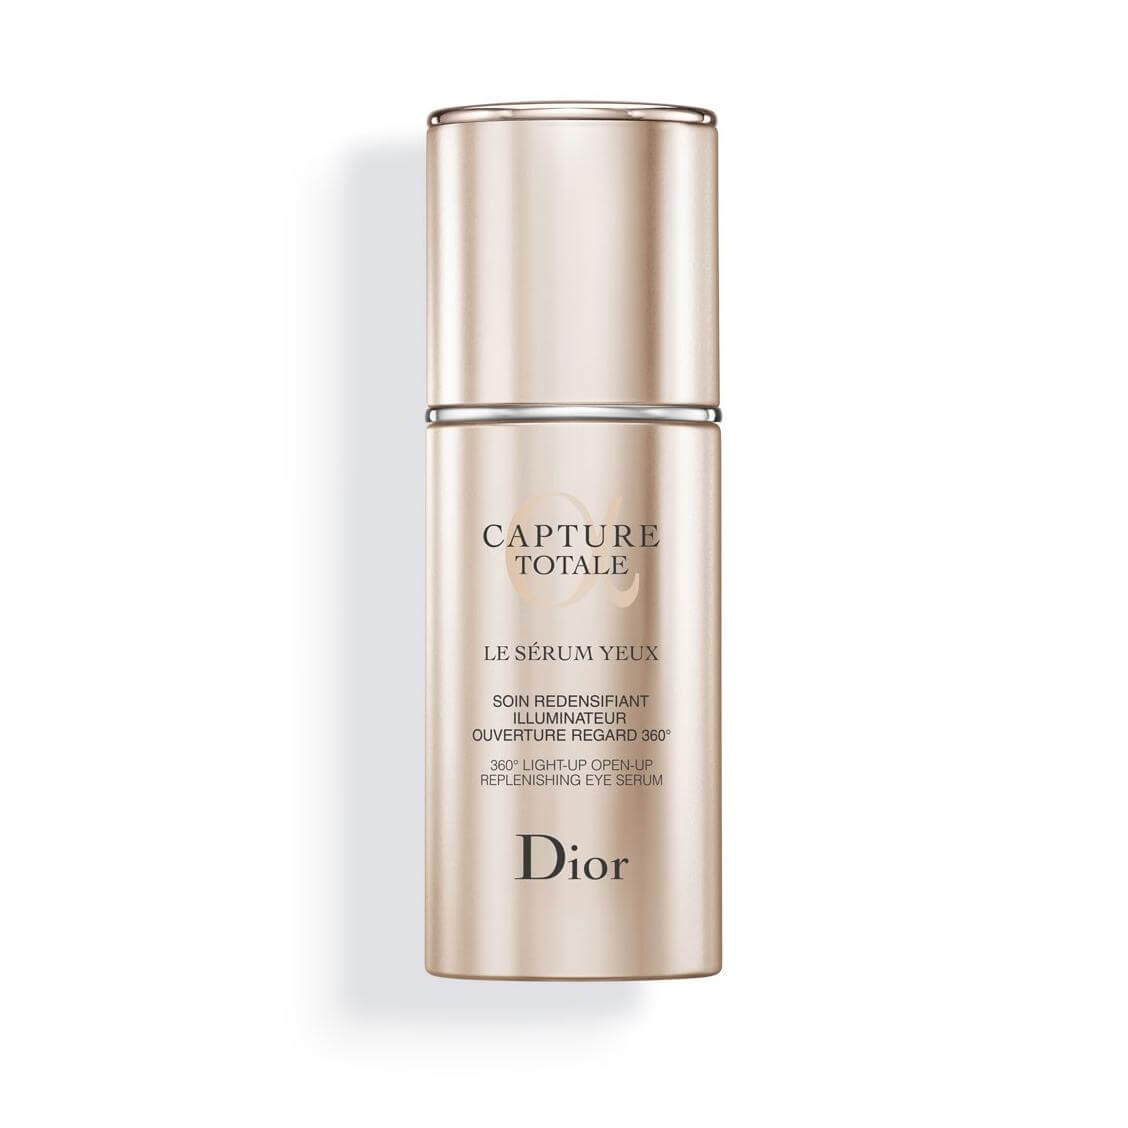 Christan Dior Capture Totale Le Serum 360 Light Up Open Up Replenishing Eye Serum 15ml